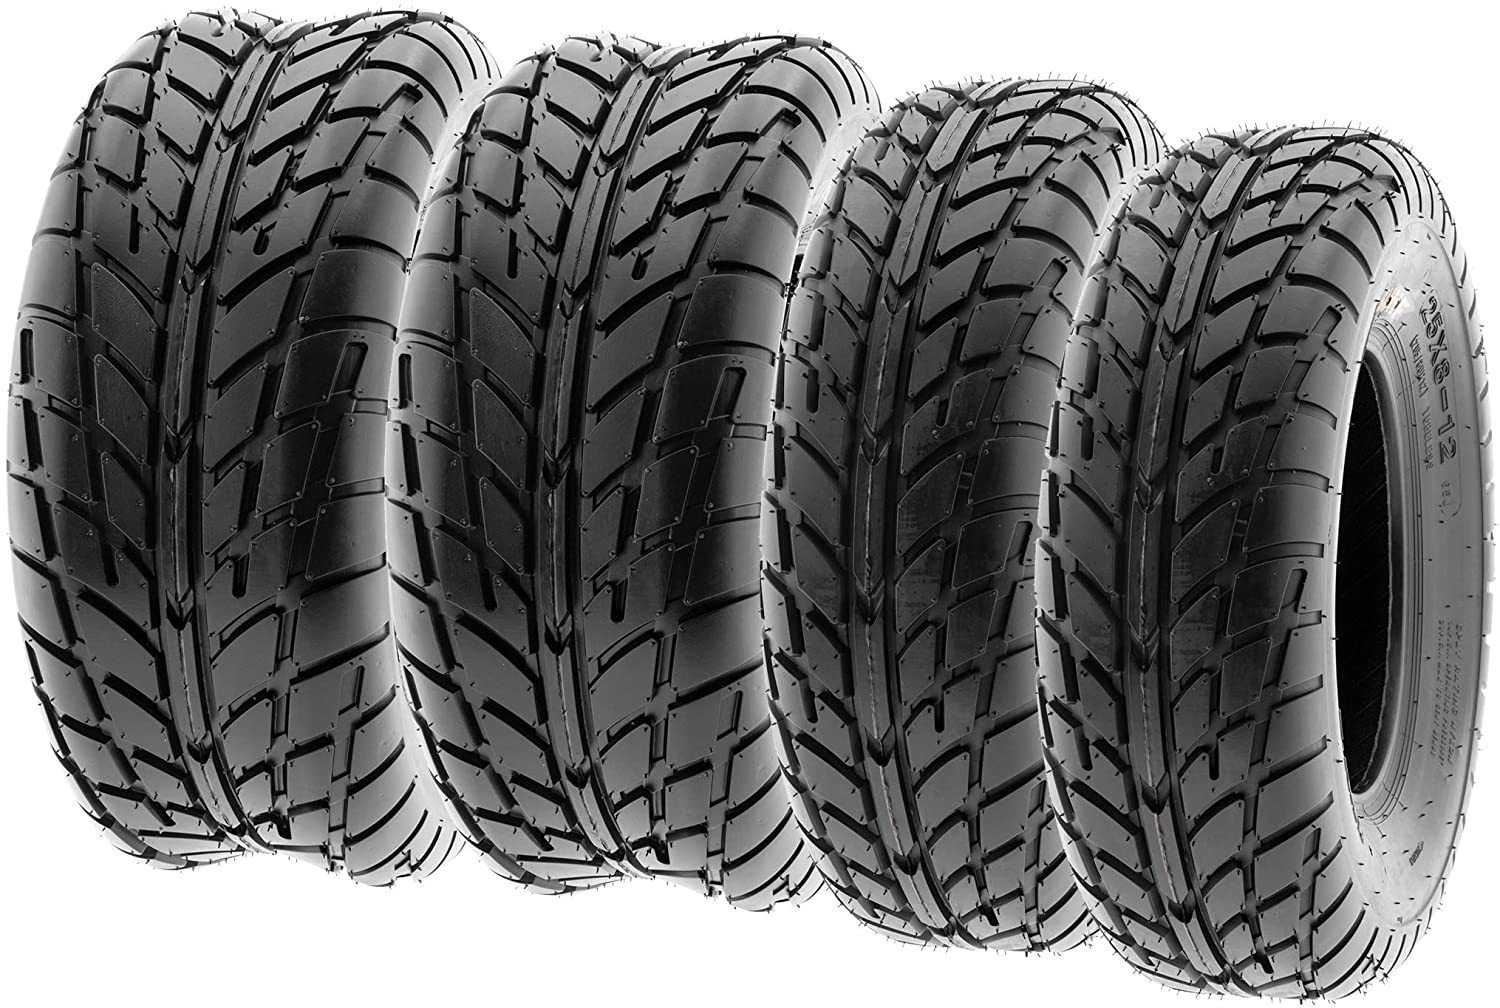 A027 Set of 4 SunF 21x7-10 /& 20x10-9 ATV UTV Quad Tyres 6 PR Front and Rear Tires